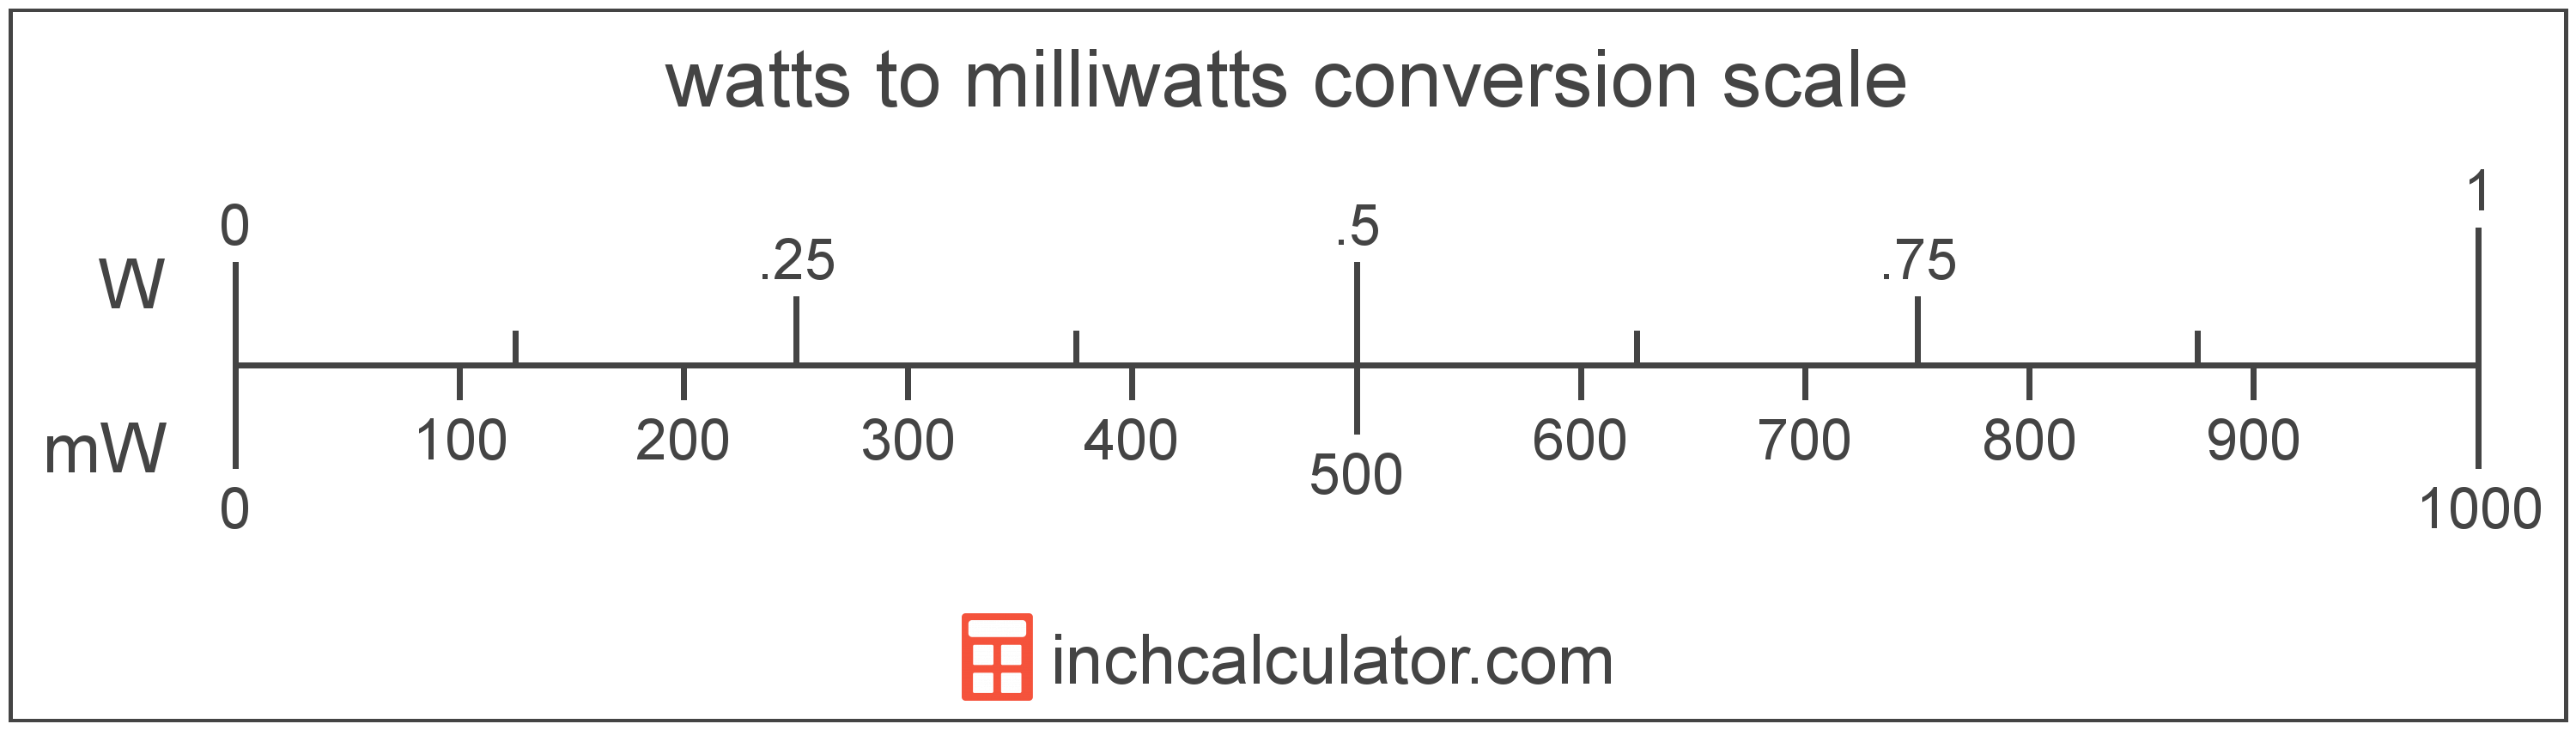 conversion scale showing milliwatts and equivalent watts power values